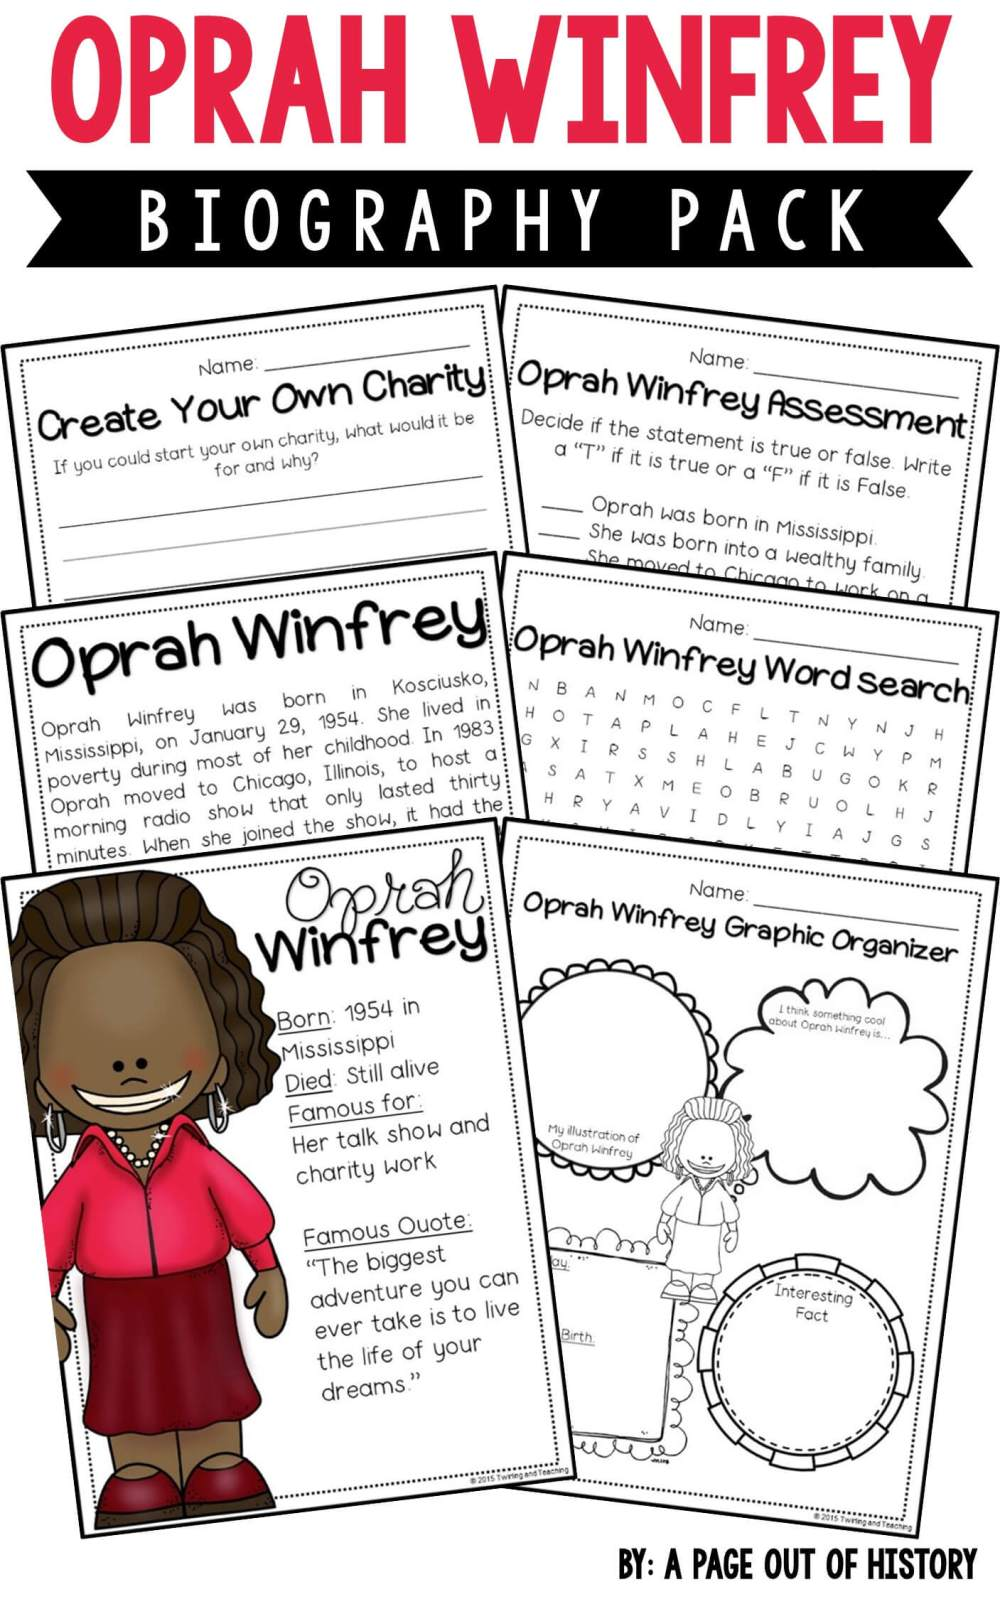 medium resolution of Oprah Winfrey Biography Pack (Women's History) - A Page Out of History